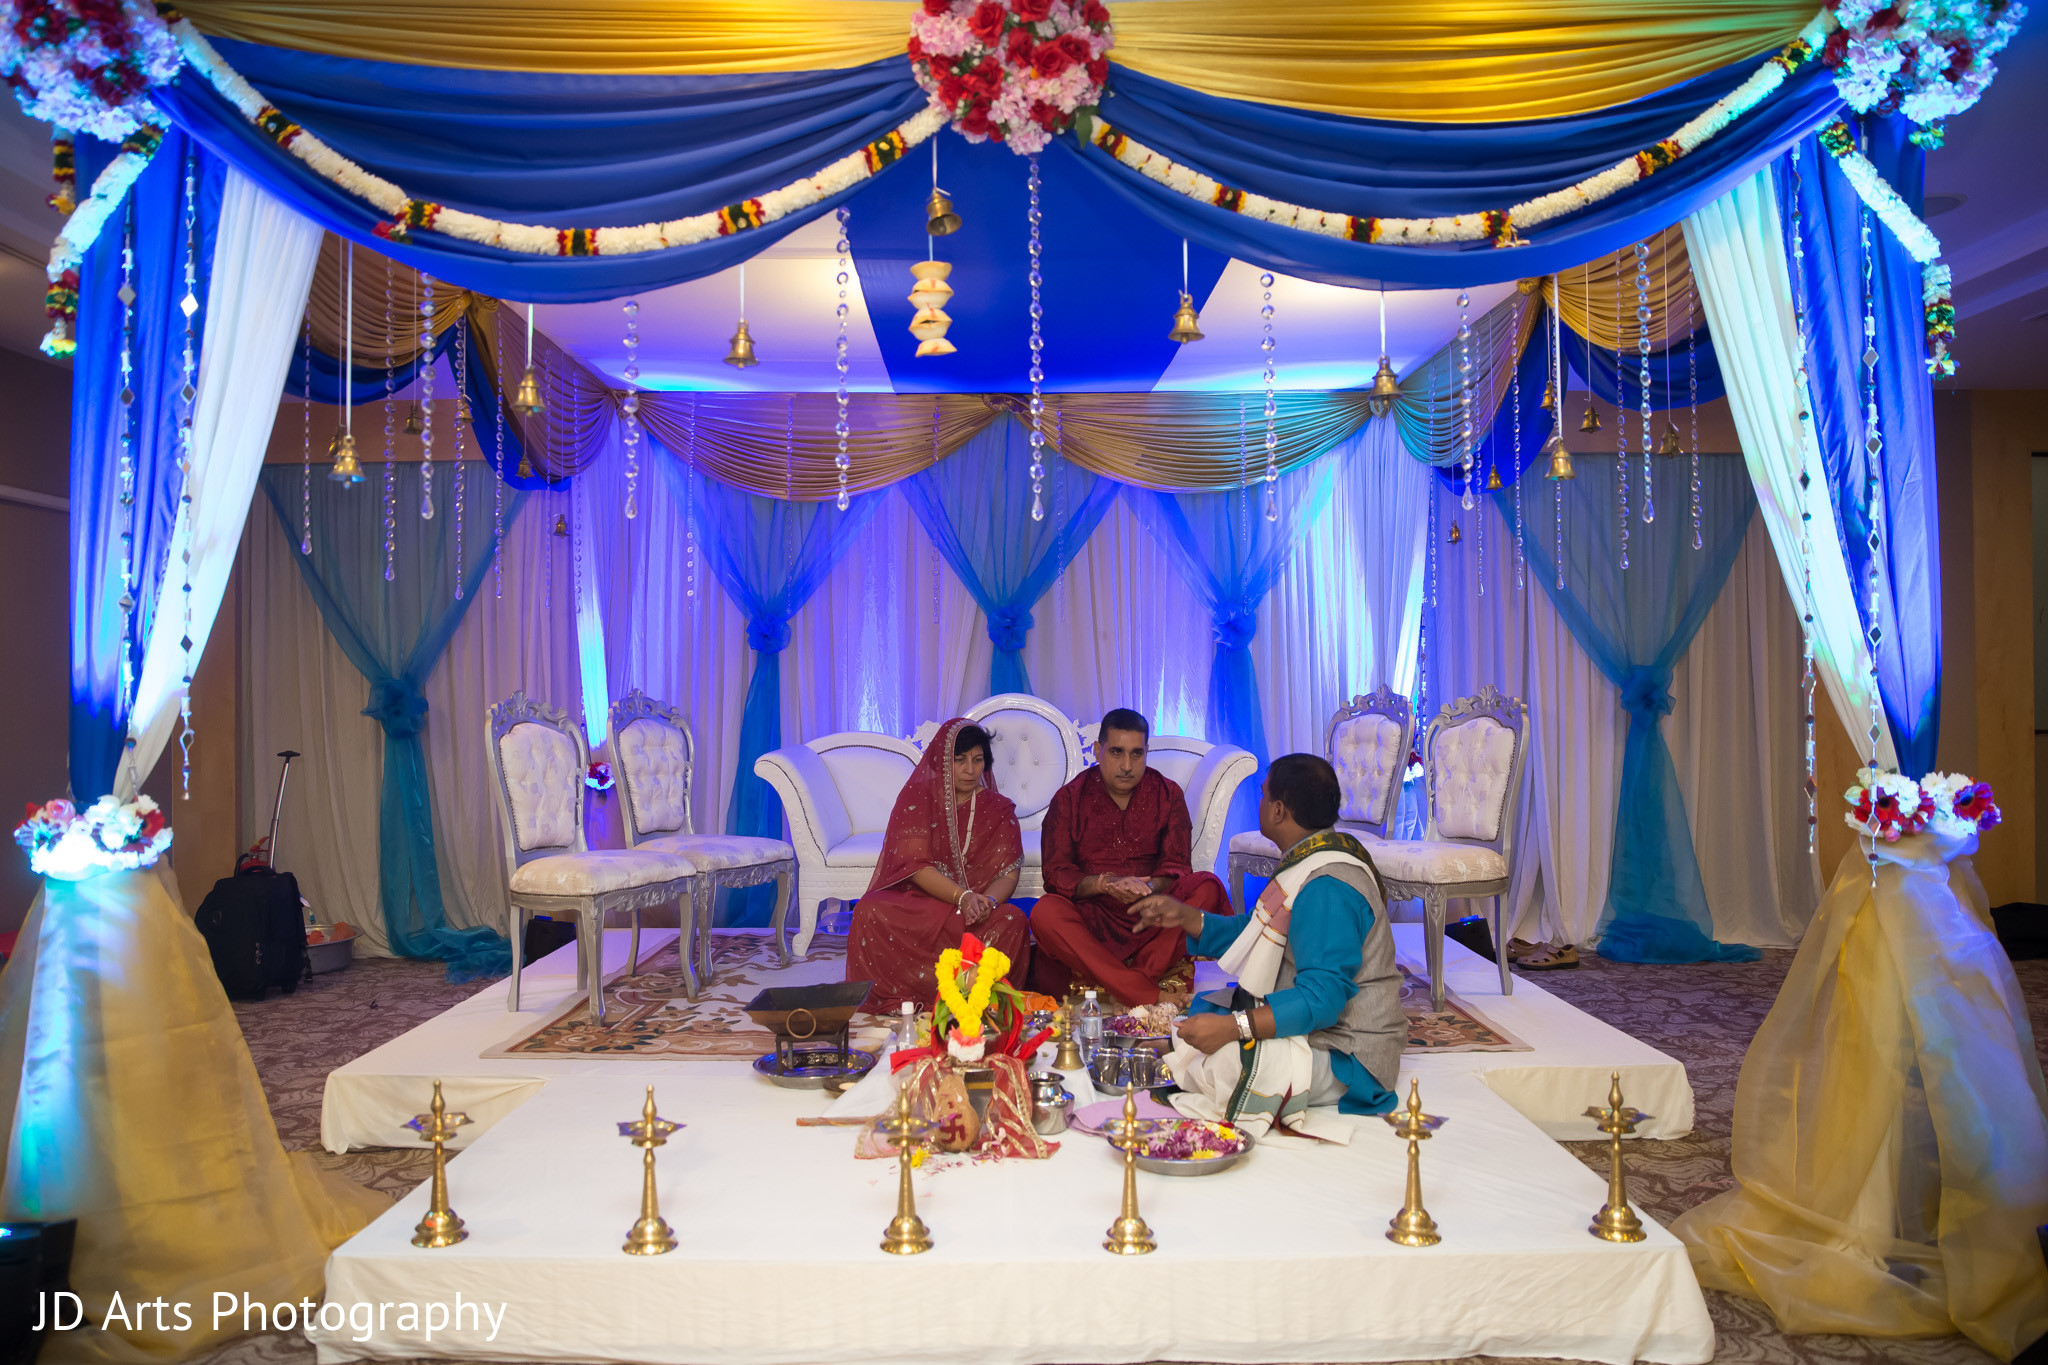 Wedding decoration online shop india images wedding dress wedding decoration online shop malaysia image collections wedding wedding decoration accessories malaysia choice image wedding dress junglespirit Image collections